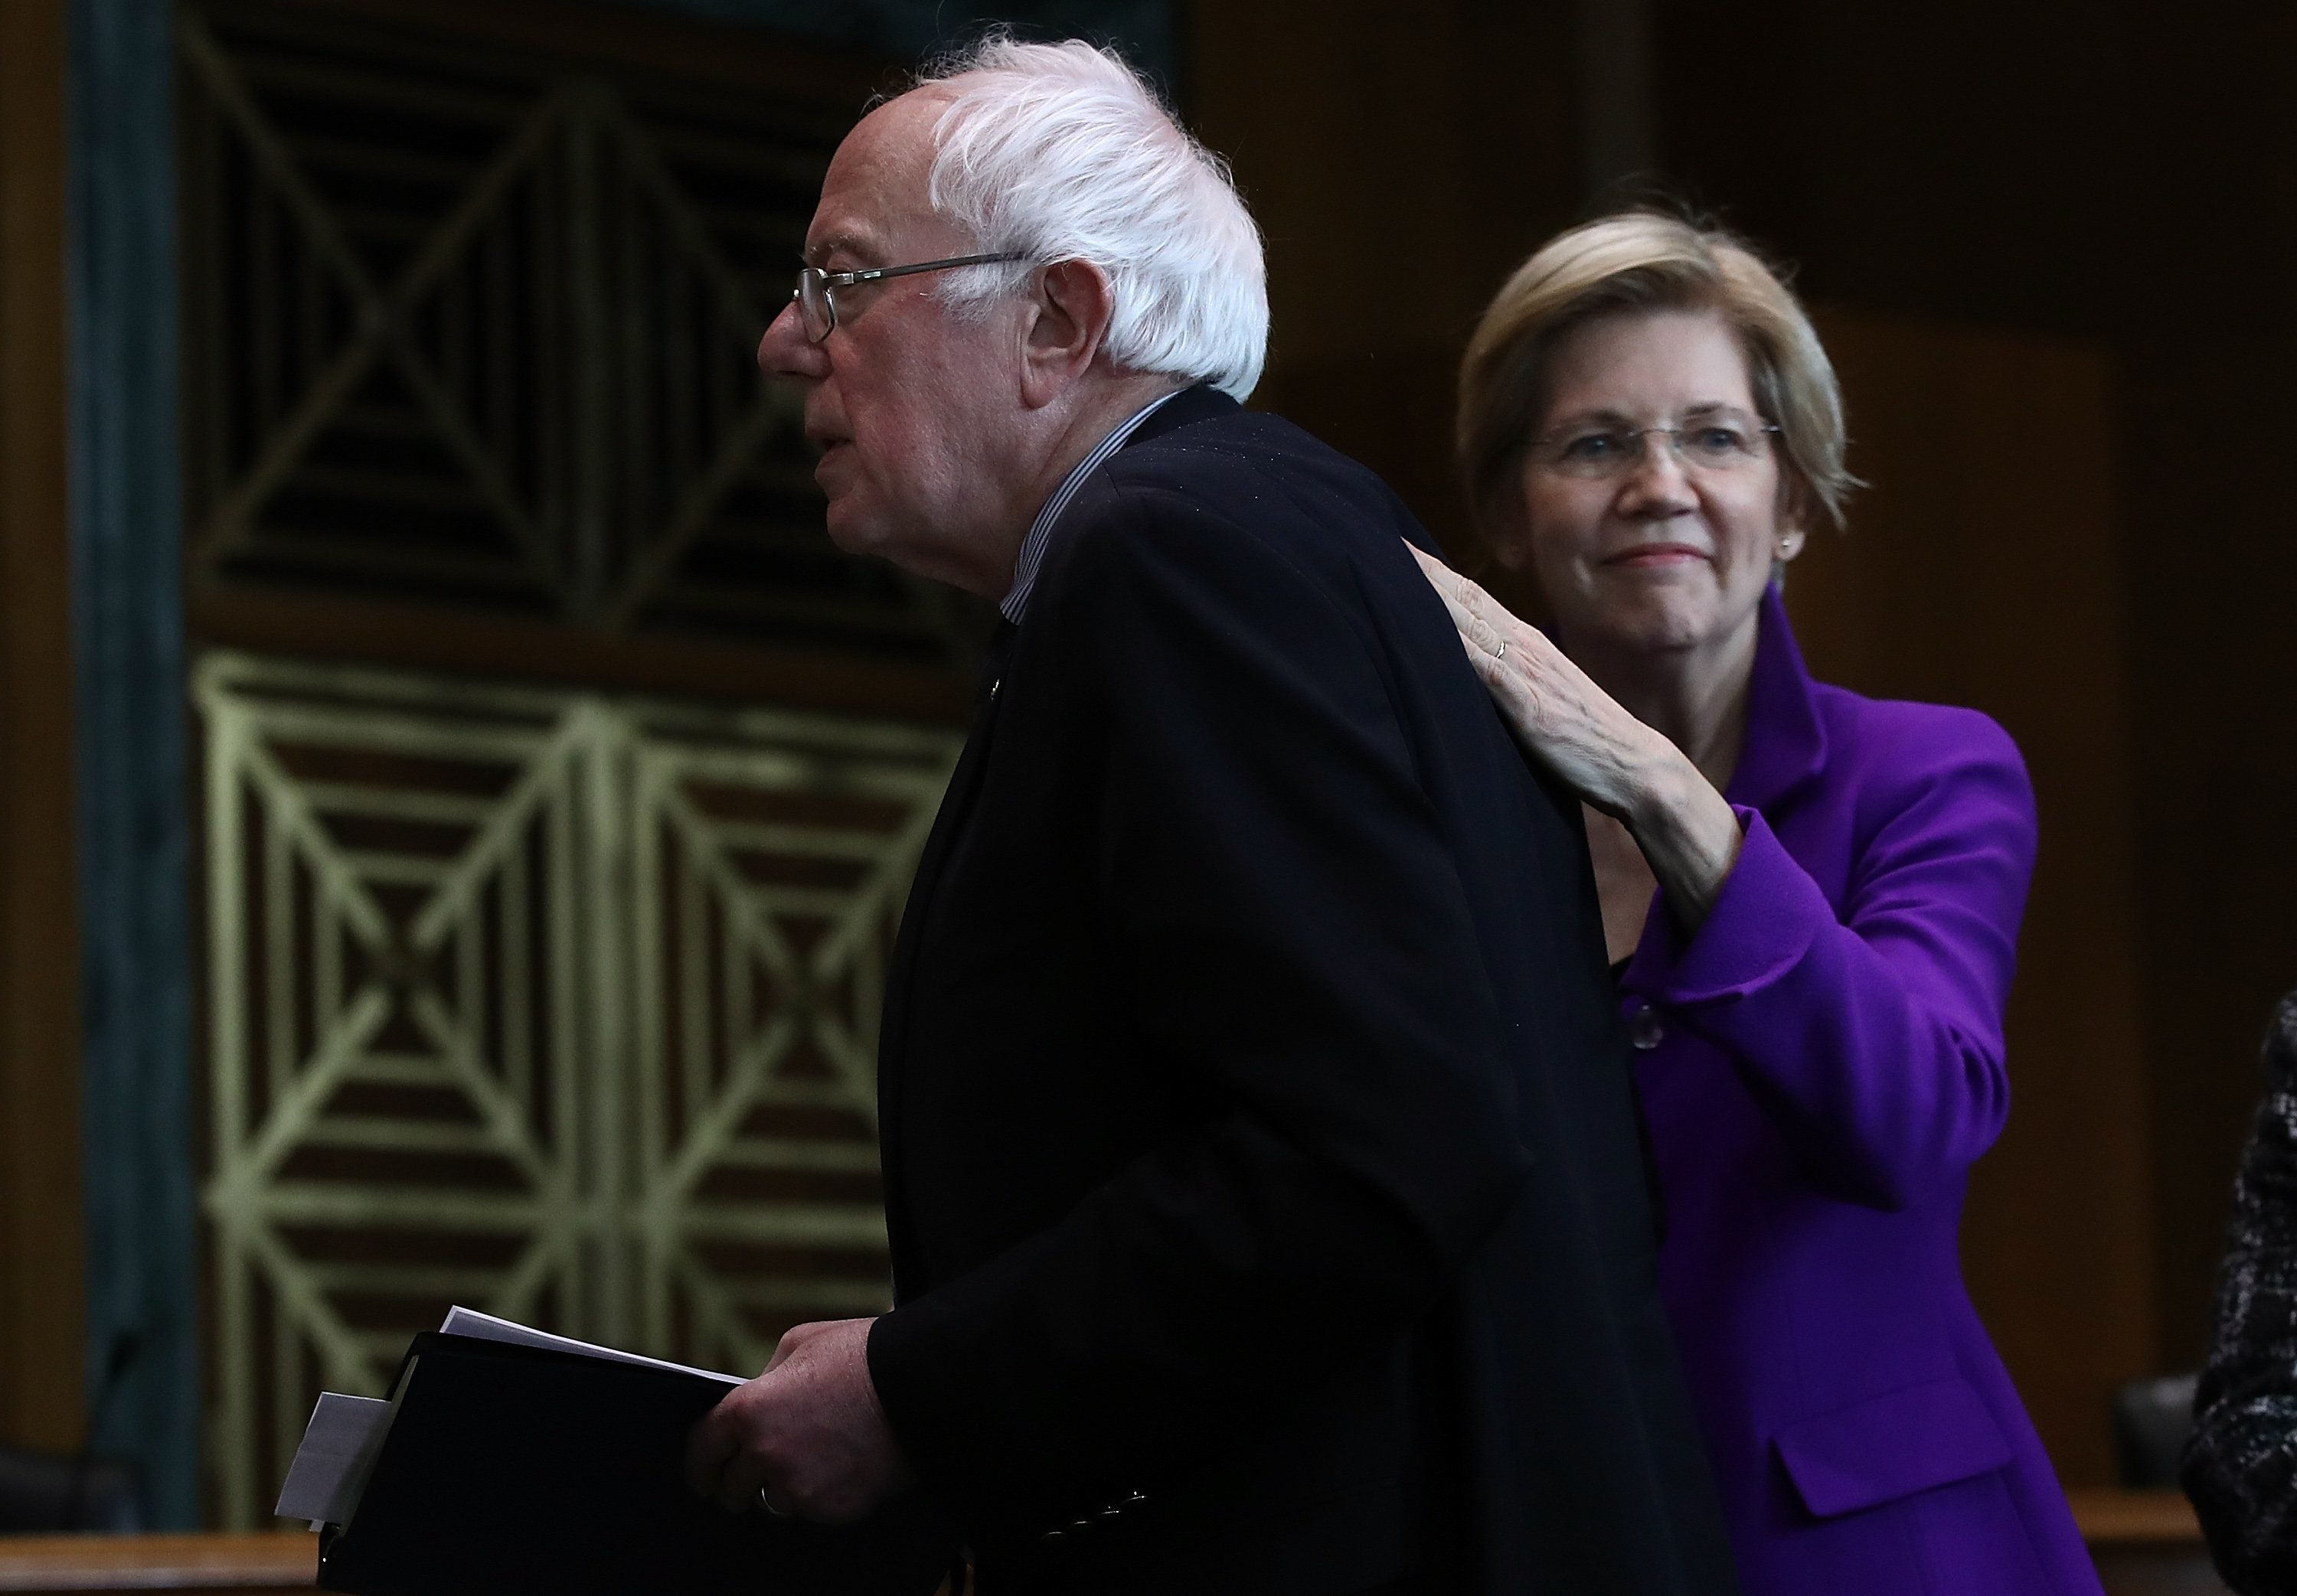 WASHINGTON, DC - FEBRUARY 16:  Sen. Elizabeth Warren (R) (D-MA) pats Sen. Bernie Sanders (L) (I-VT) on the back after Sanders spoke at a news conference on the Social Security system February 16, 2017 in Washington, DC. The news conference, hosted by Social Security Works, was held to mark 'the day that millionaires stop paying into Social Security for the rest of the year' and to 'demand that the wealthiest pay their fair share into Social Security.'  (Photo by Win McNamee/Getty Images)